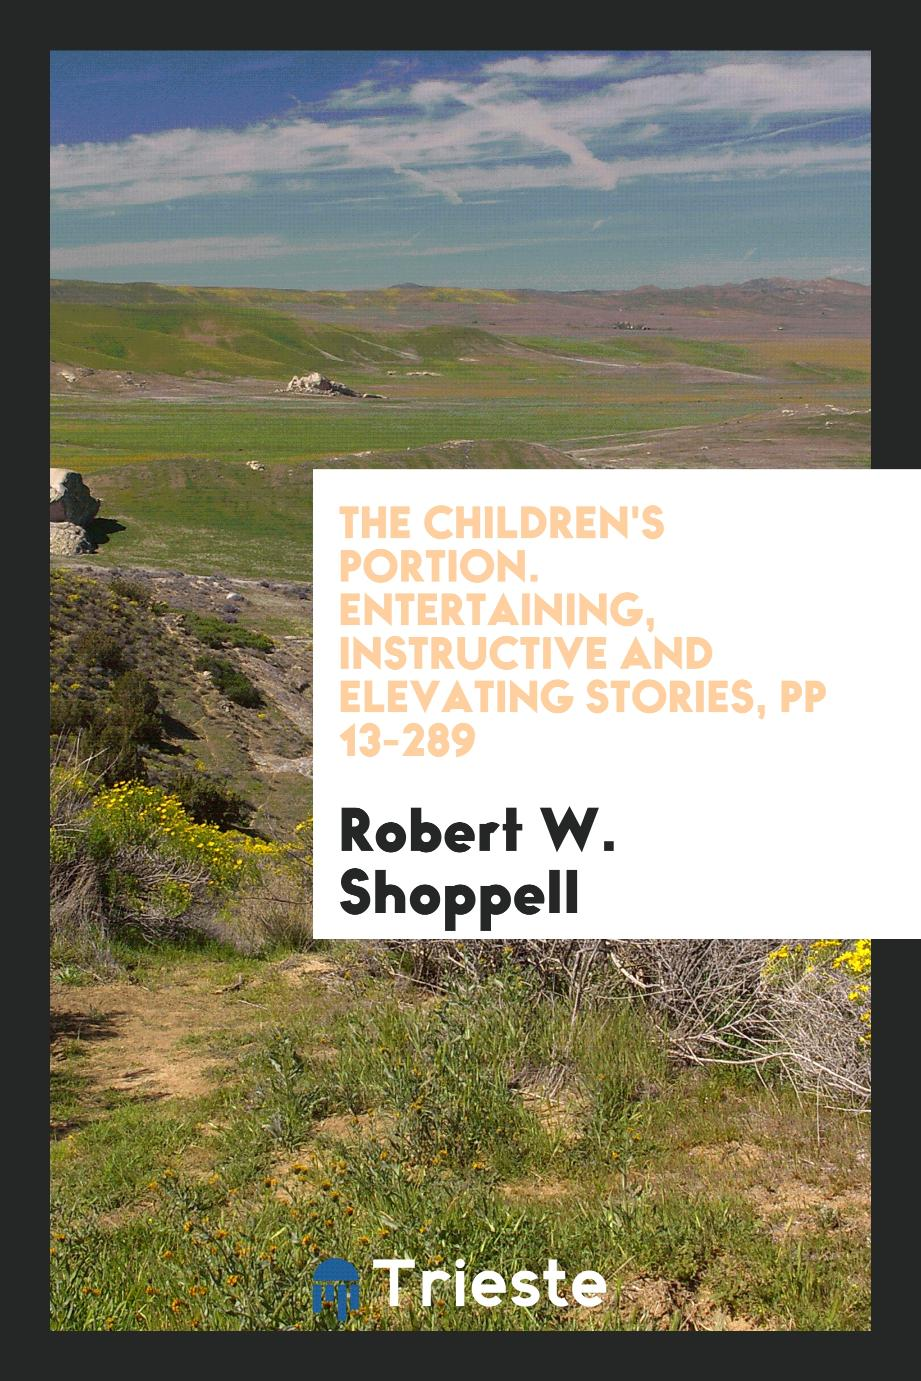 The Children's portion. Entertaining, instructive and elevating stories, pp 13-289